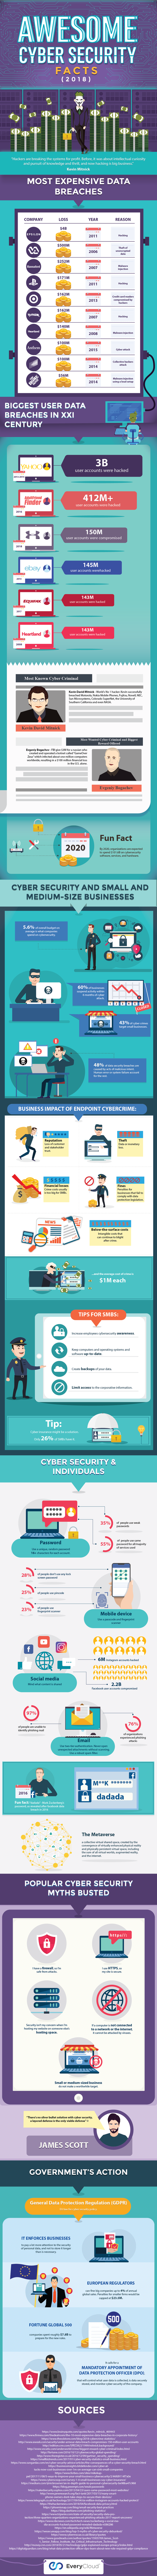 awesome-cyber-security-facts-infographic